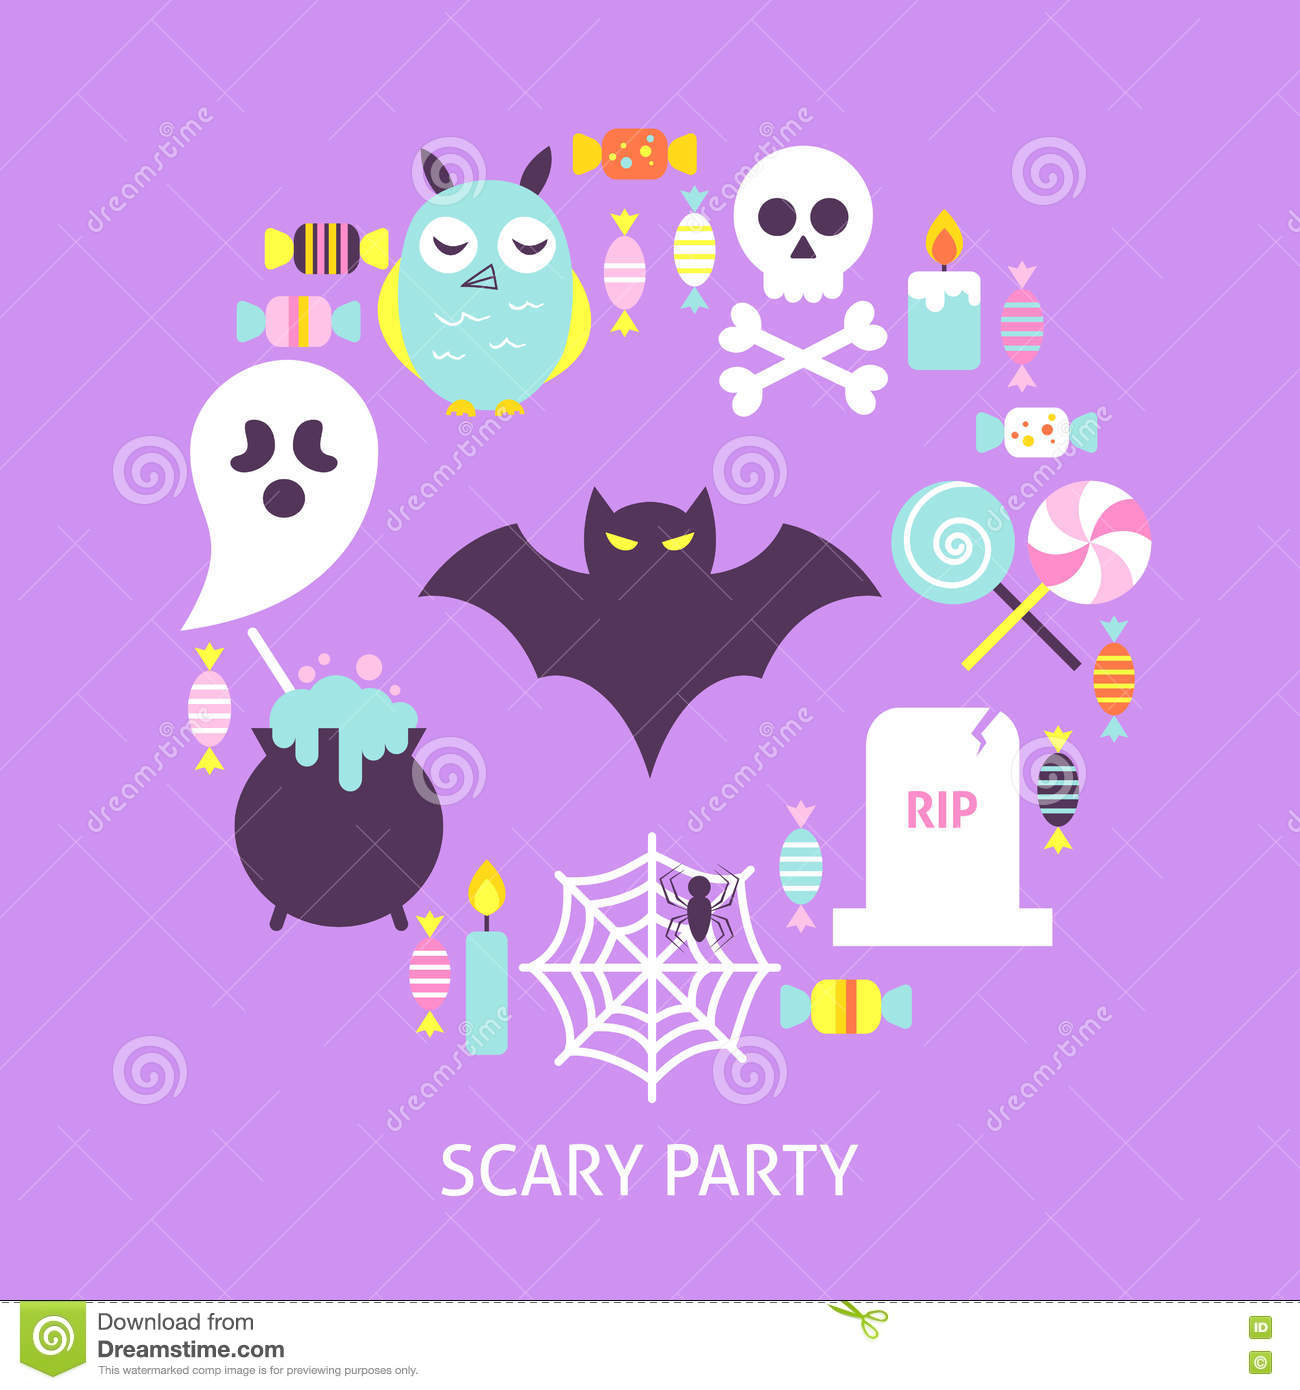 Trendy Poster Designs: Scary Party Trendy Poster Stock Vector. Illustration Of